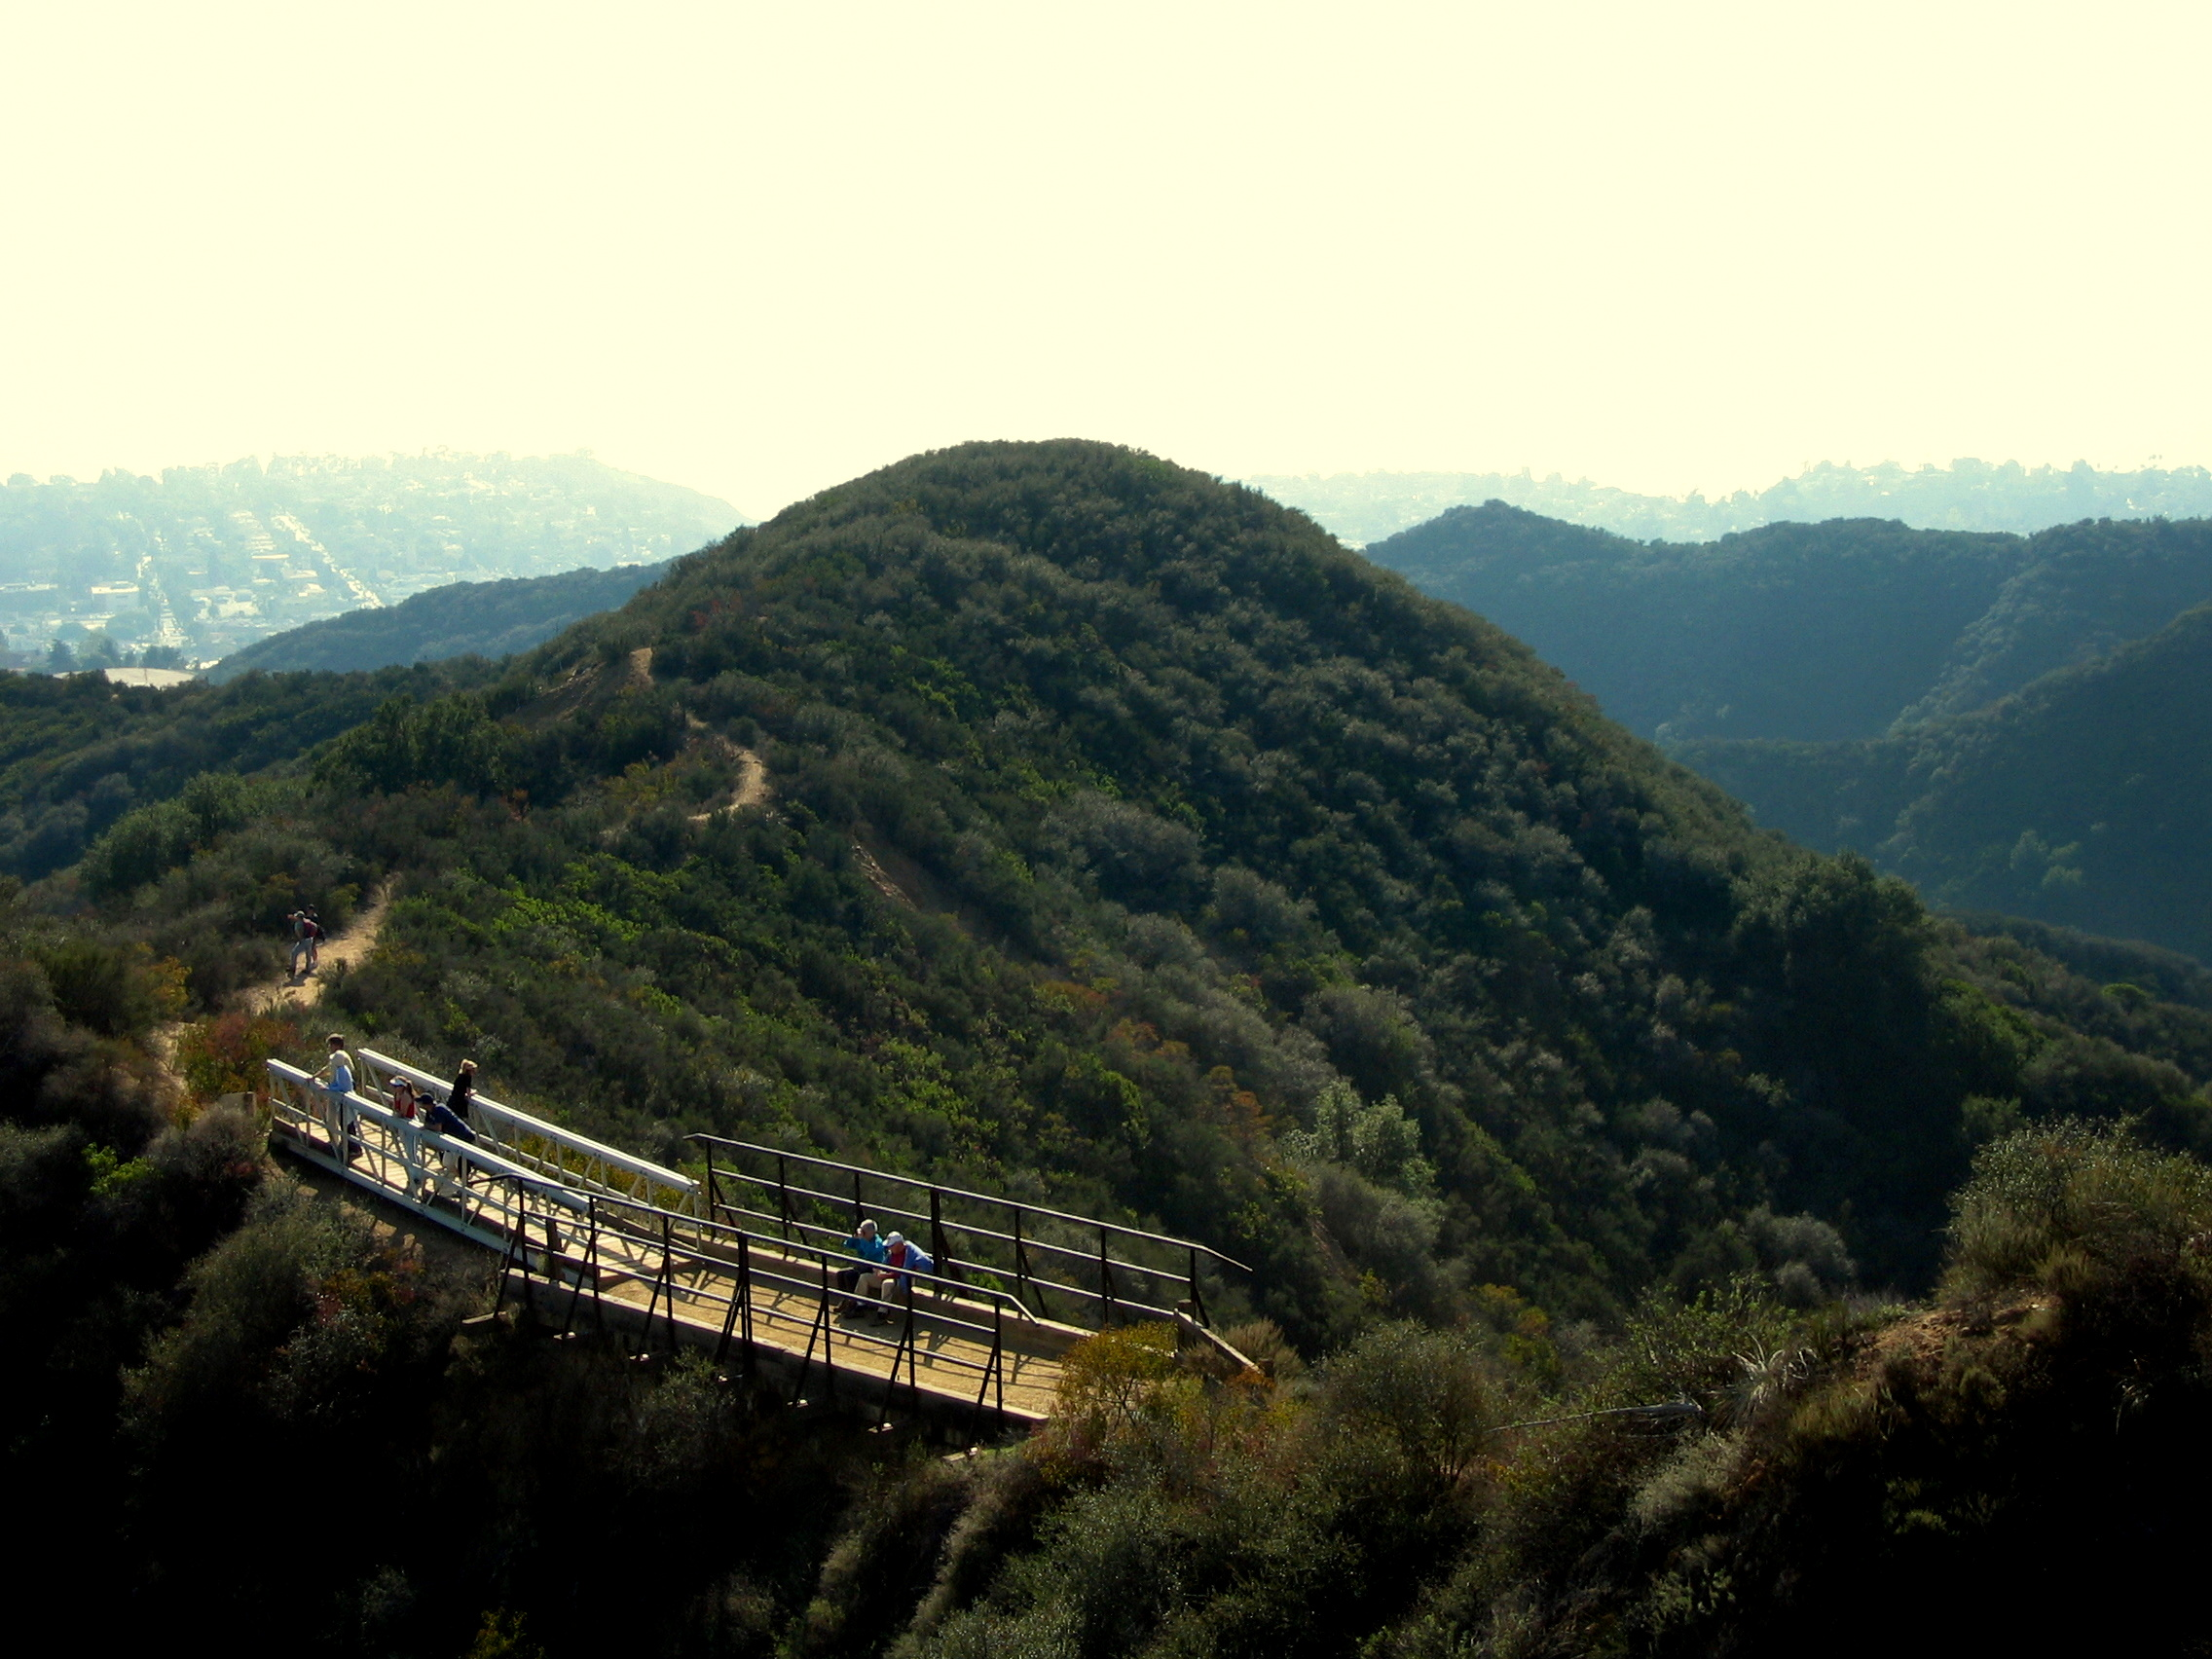 PEAK: Backbone Trail @ Will Rogers State Park - Difficulty:3/5Scenery: Sweeping views of the ocean, mountains and maybe Catalina Island!Fun Fact: Will Rogers,the famous actor for whom this park was named, was self-described as a